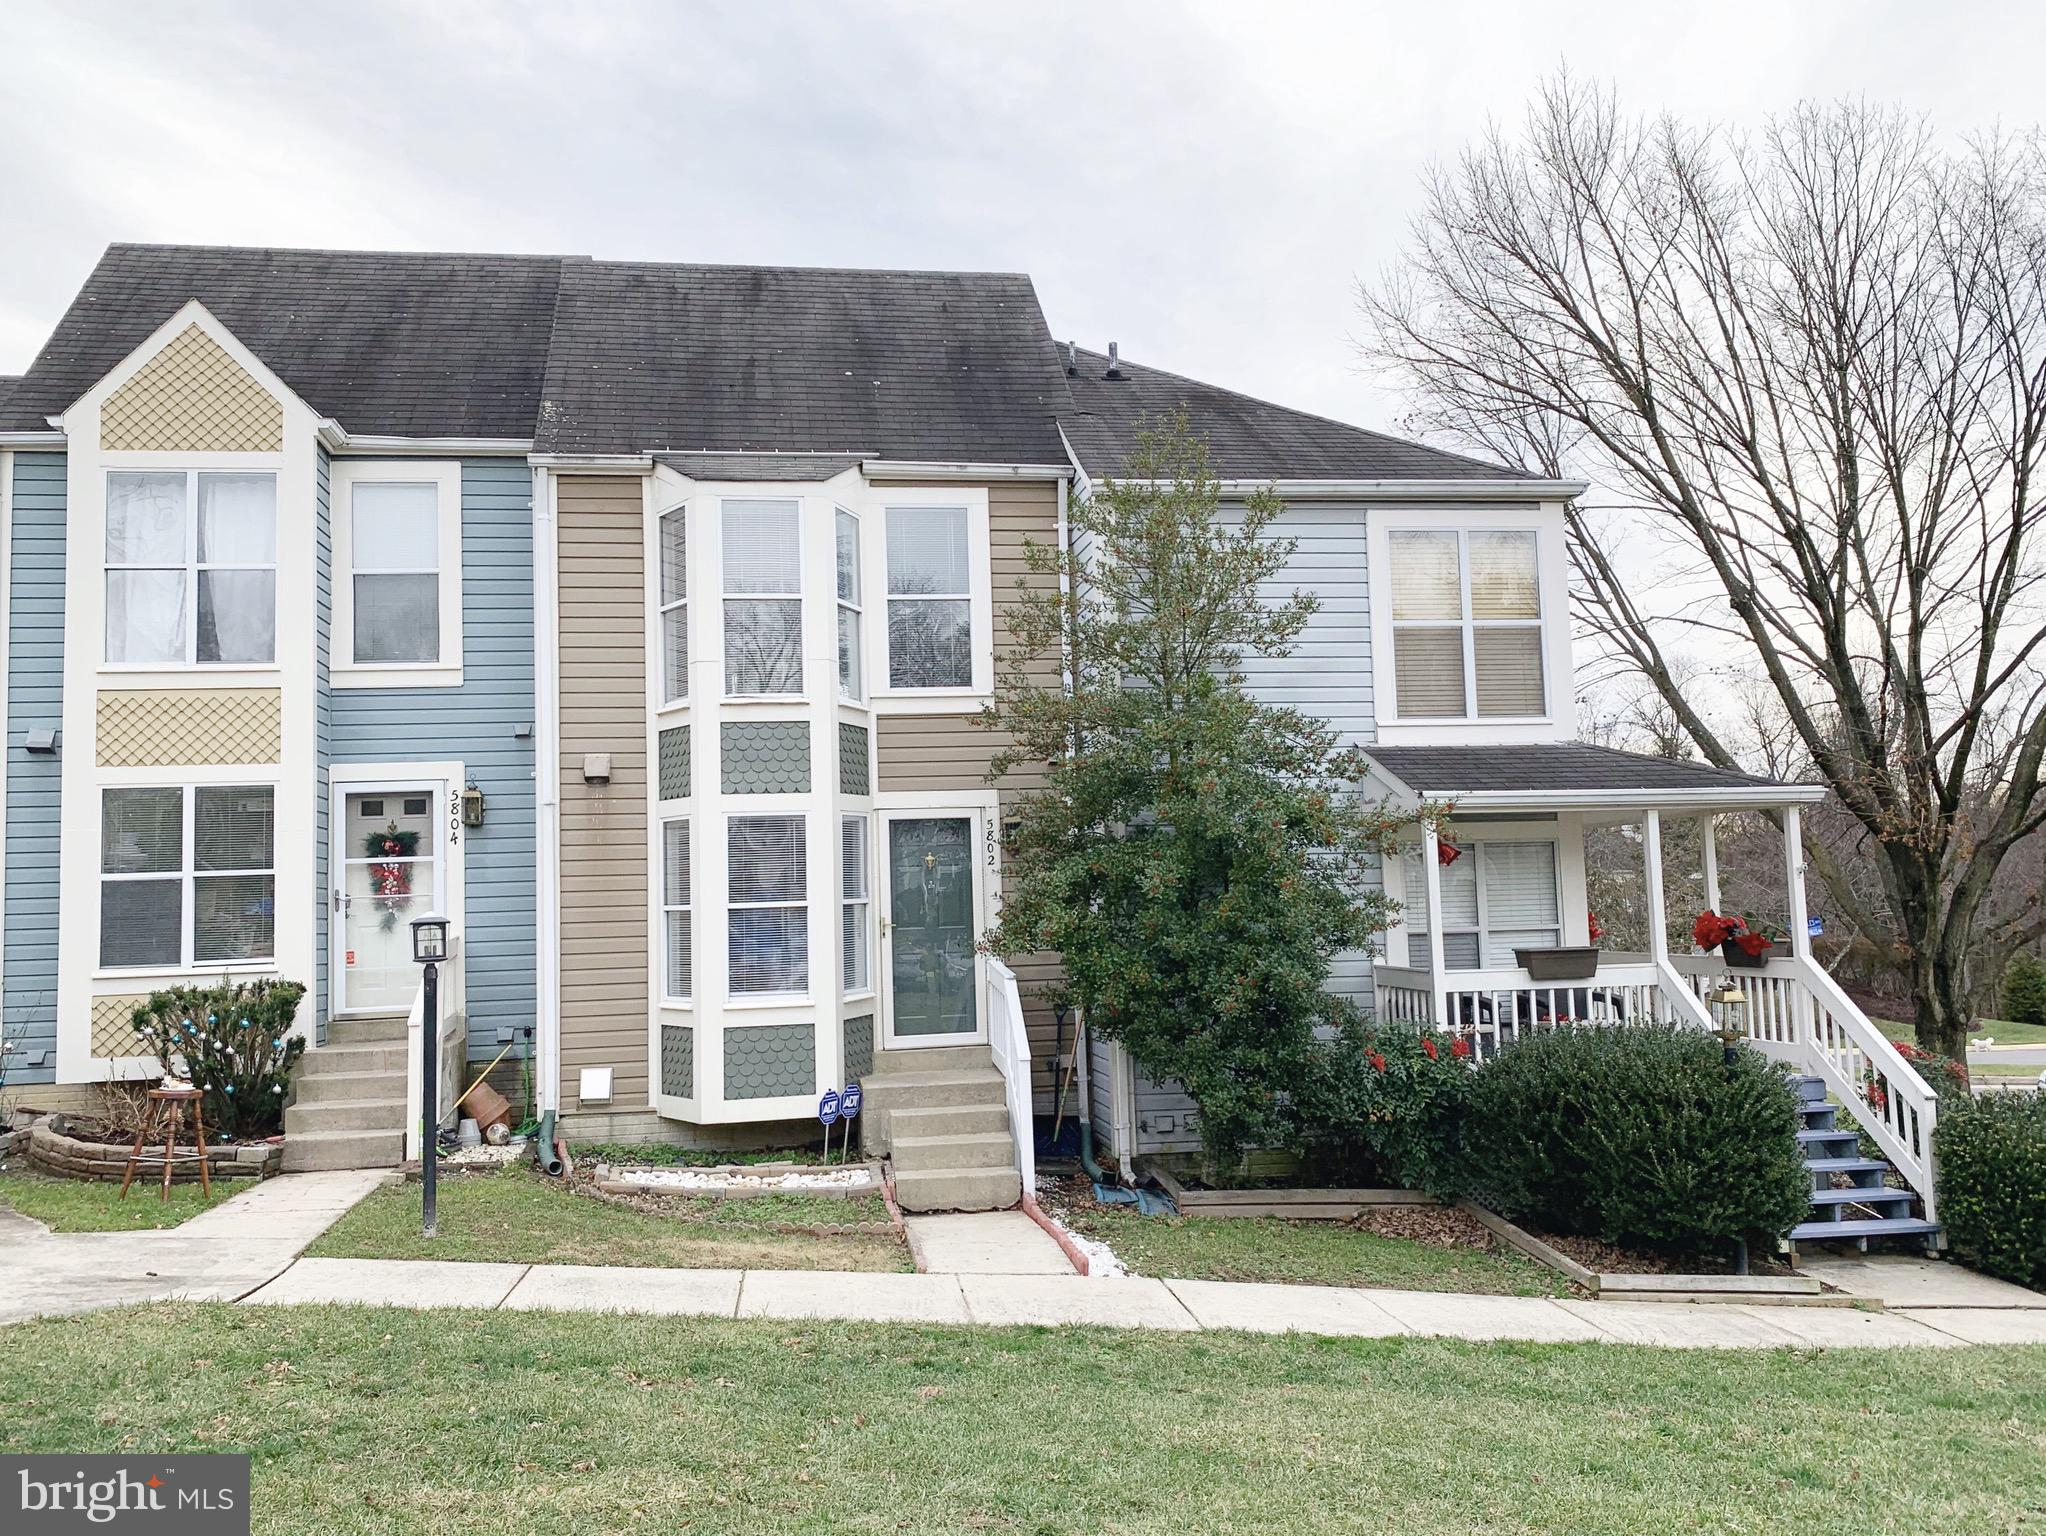 Beautiful 3 level townhouse on a quiet cul-de-sac. Located in the heart of Kingstowne.  Convenient location within minutes to Ft. Belvoir, Springfield metro station, and 95/495.Kitchen with new stainless appliances & granite I countertops.  Freshly painted. Wood floors on the main level. Living room with fireplace. Walkout basement. Home warranty included.